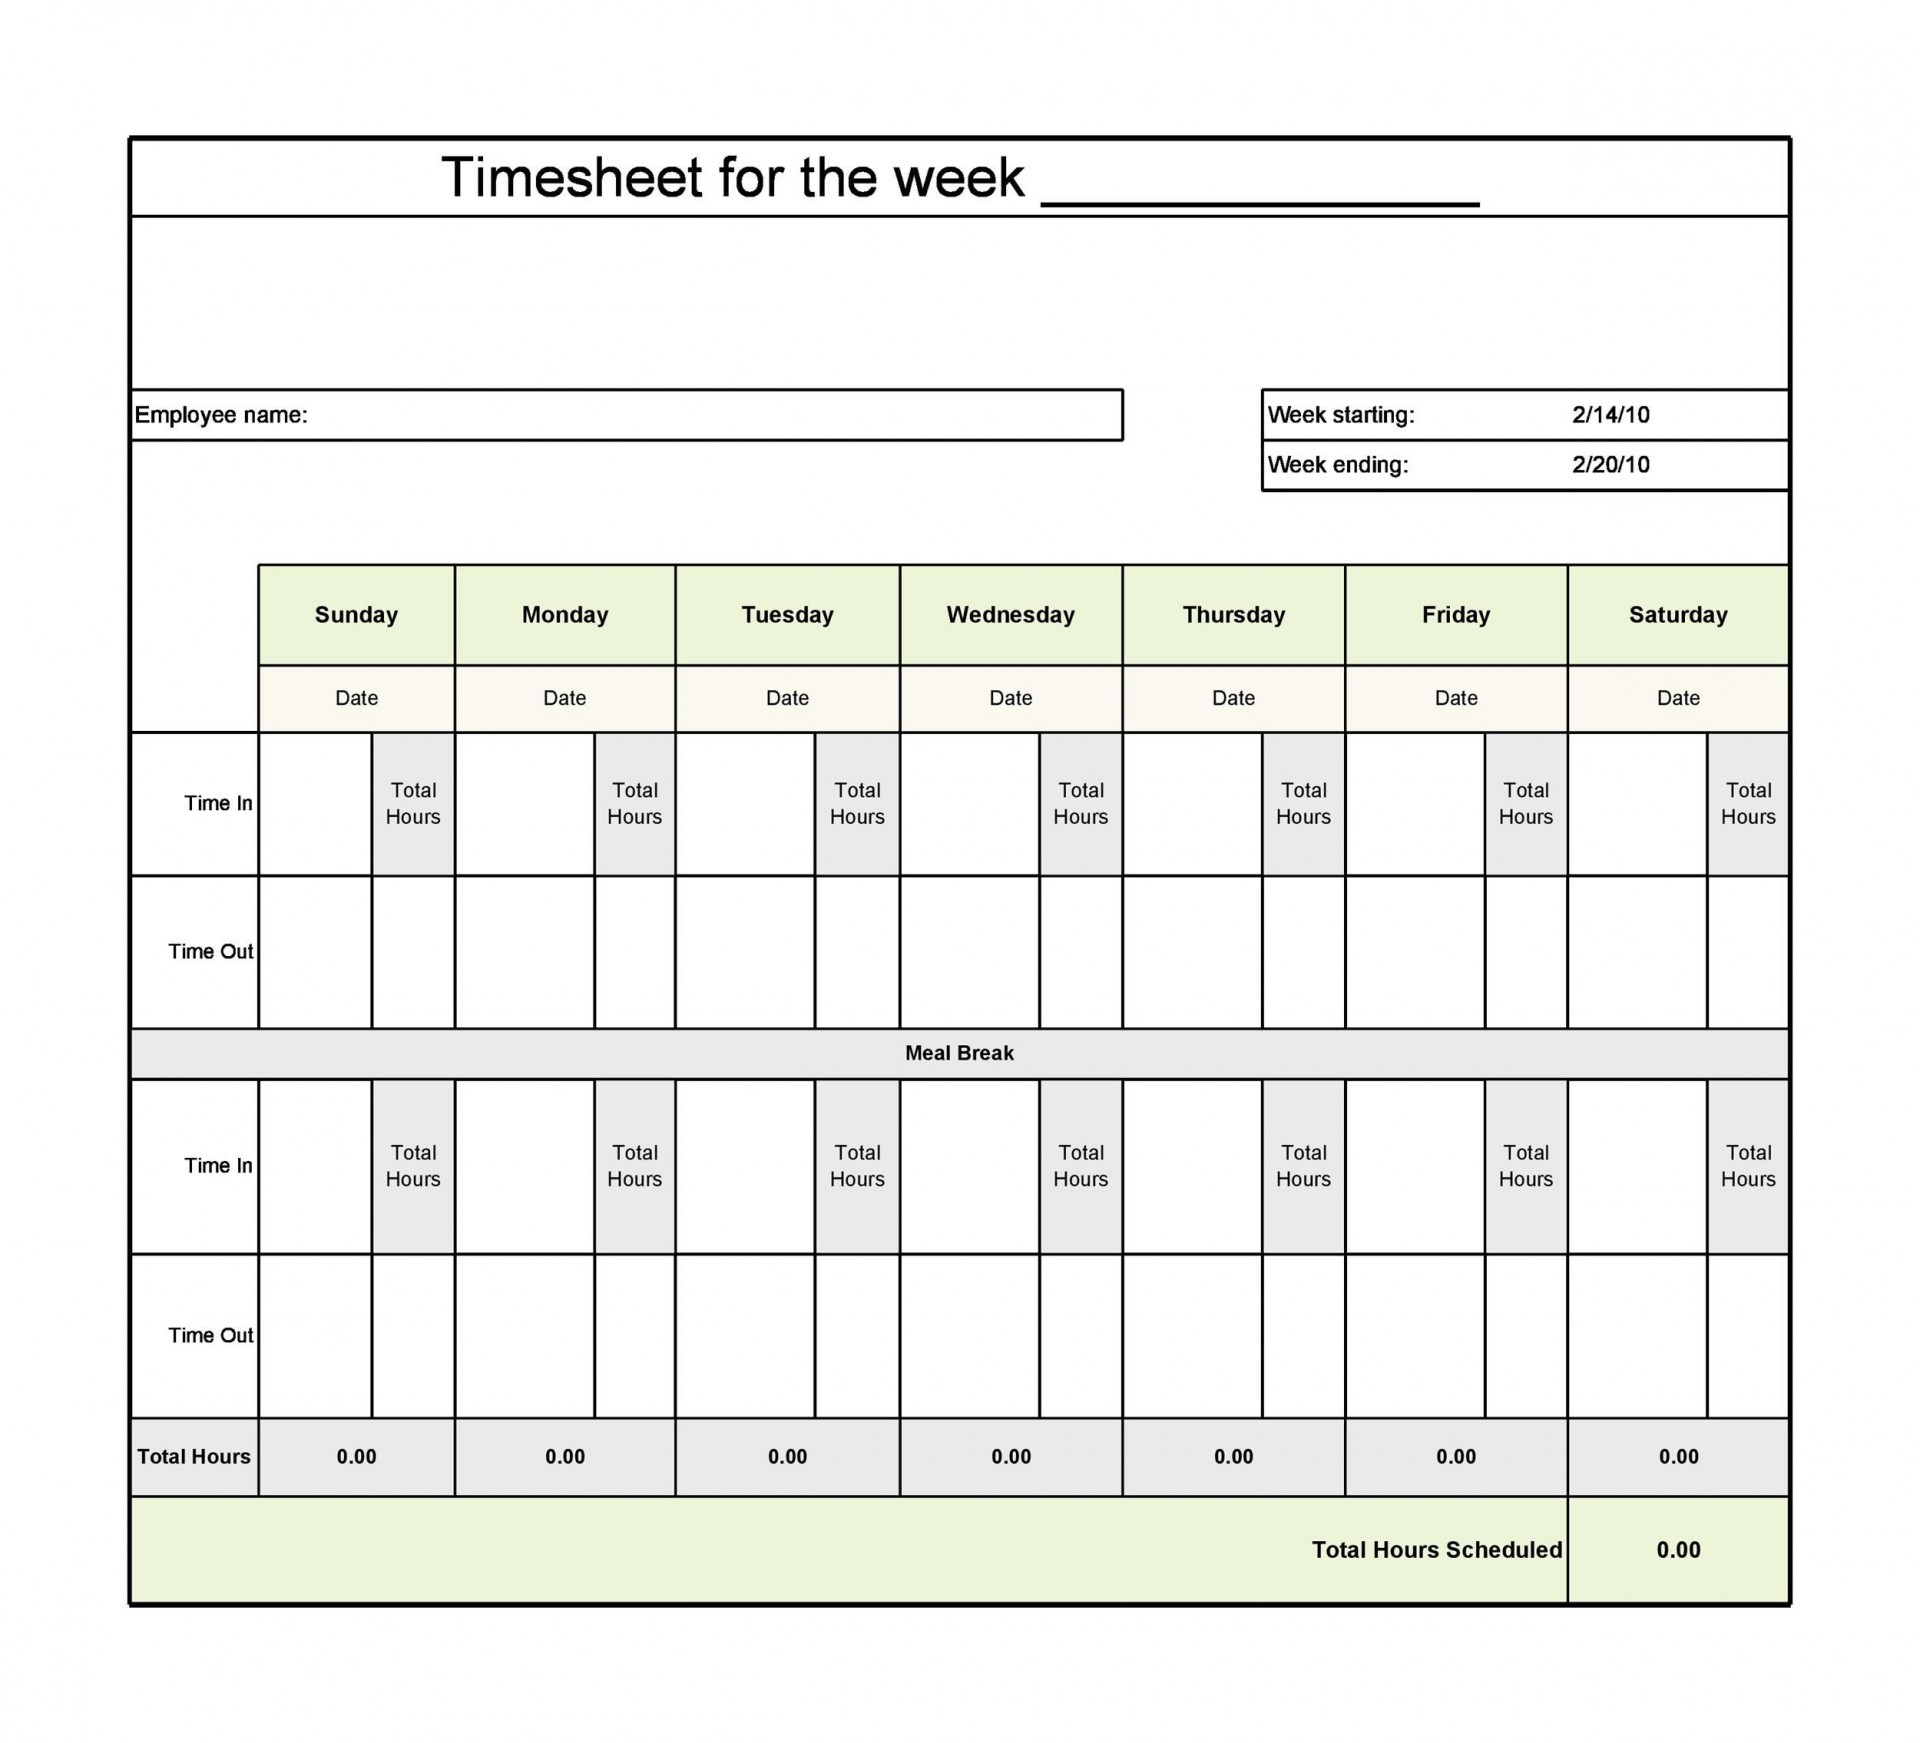 007 Surprising Weekly Timesheet Template Excel High Resolution  Simple Free1920